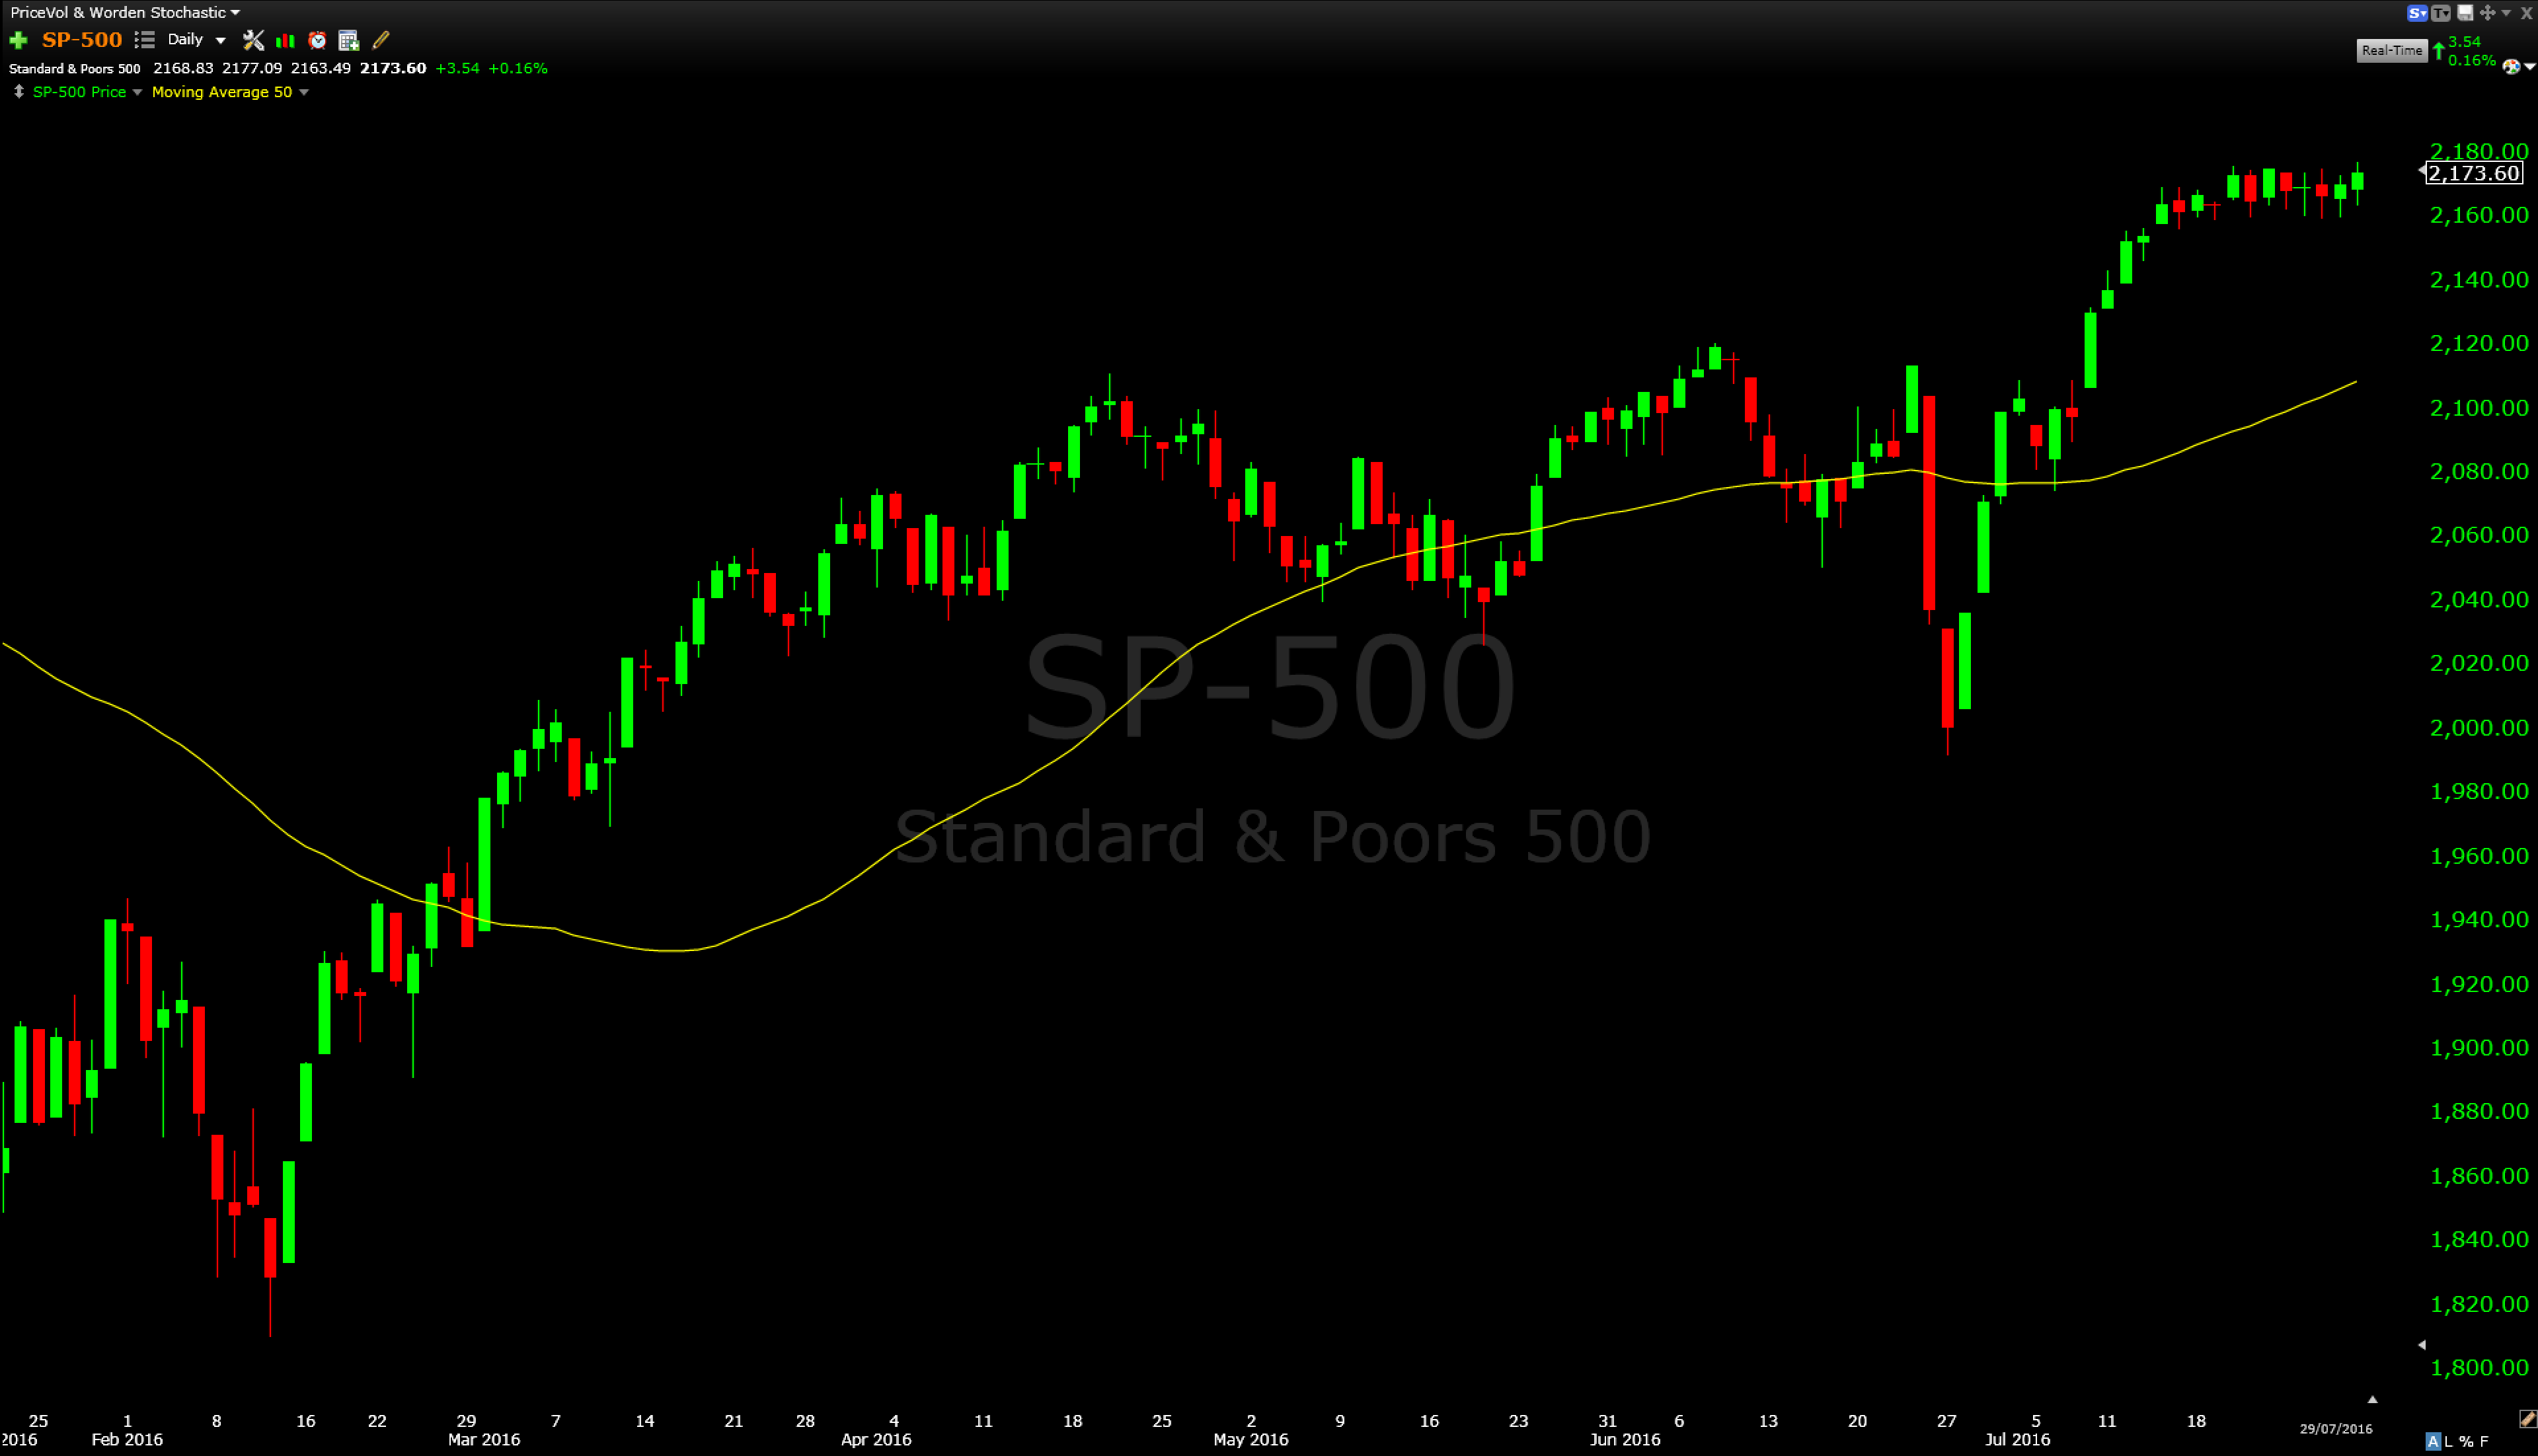 Daily Chart of the S&P 500